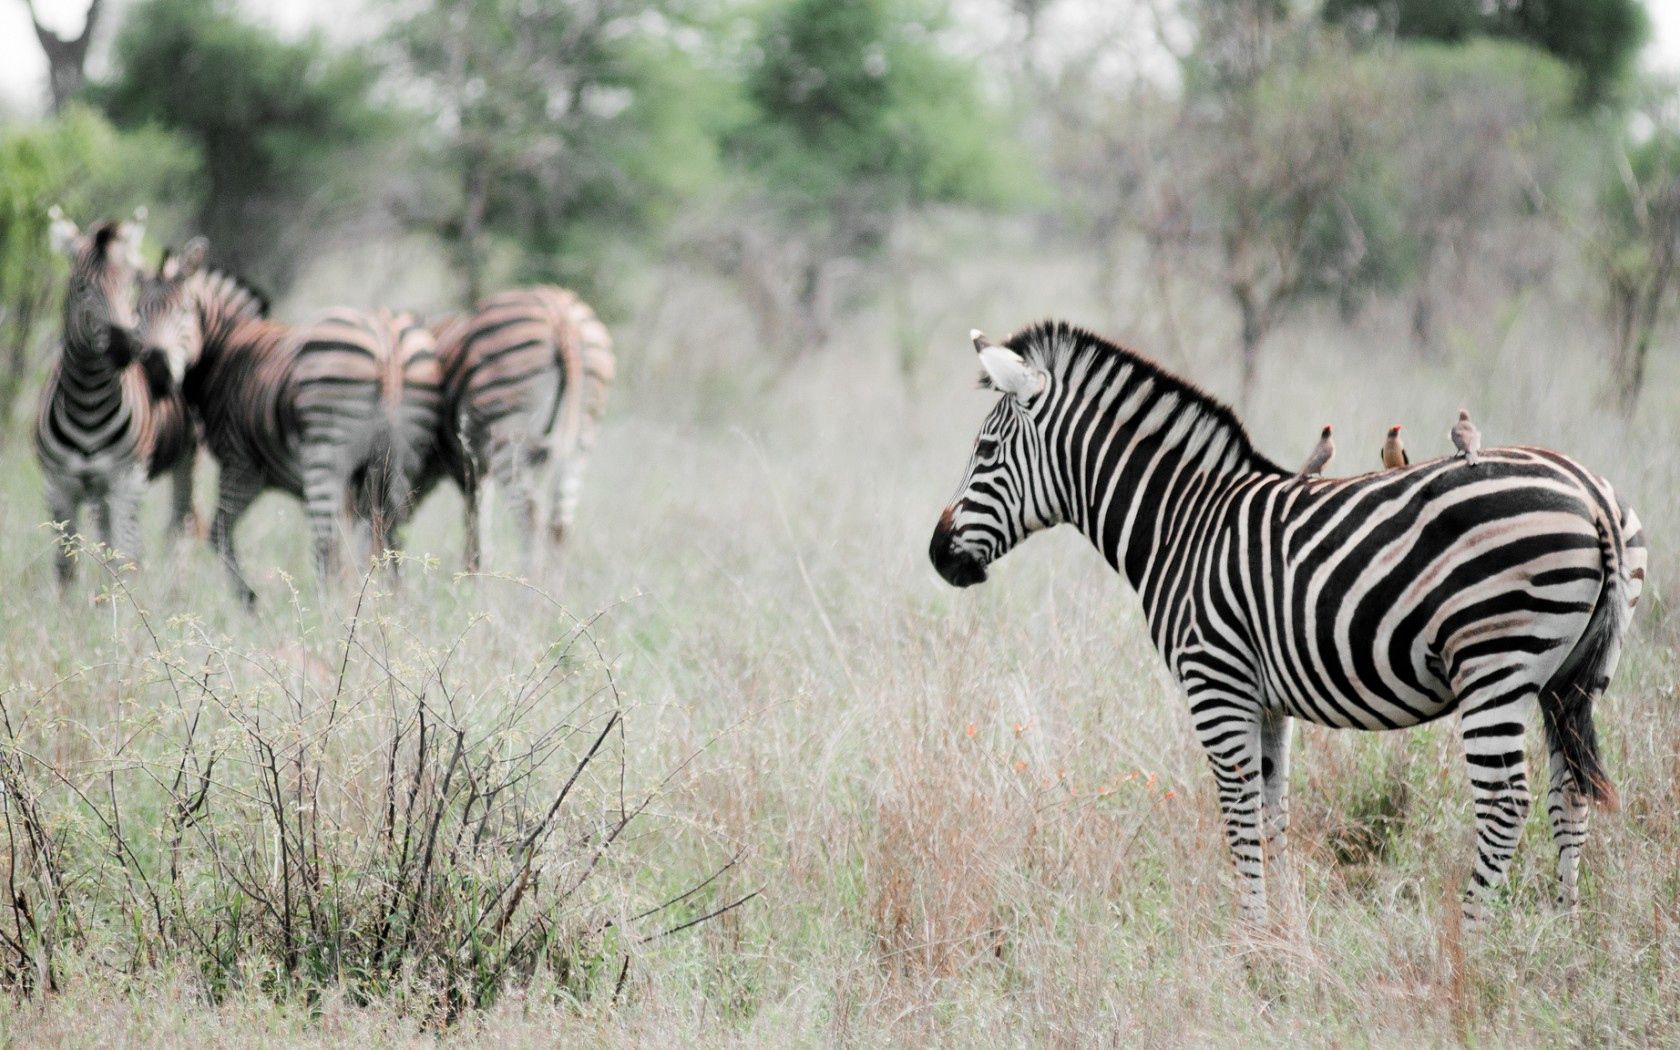 148234 download wallpaper Animals, Effect, Nature, Birds, Zebra screensavers and pictures for free